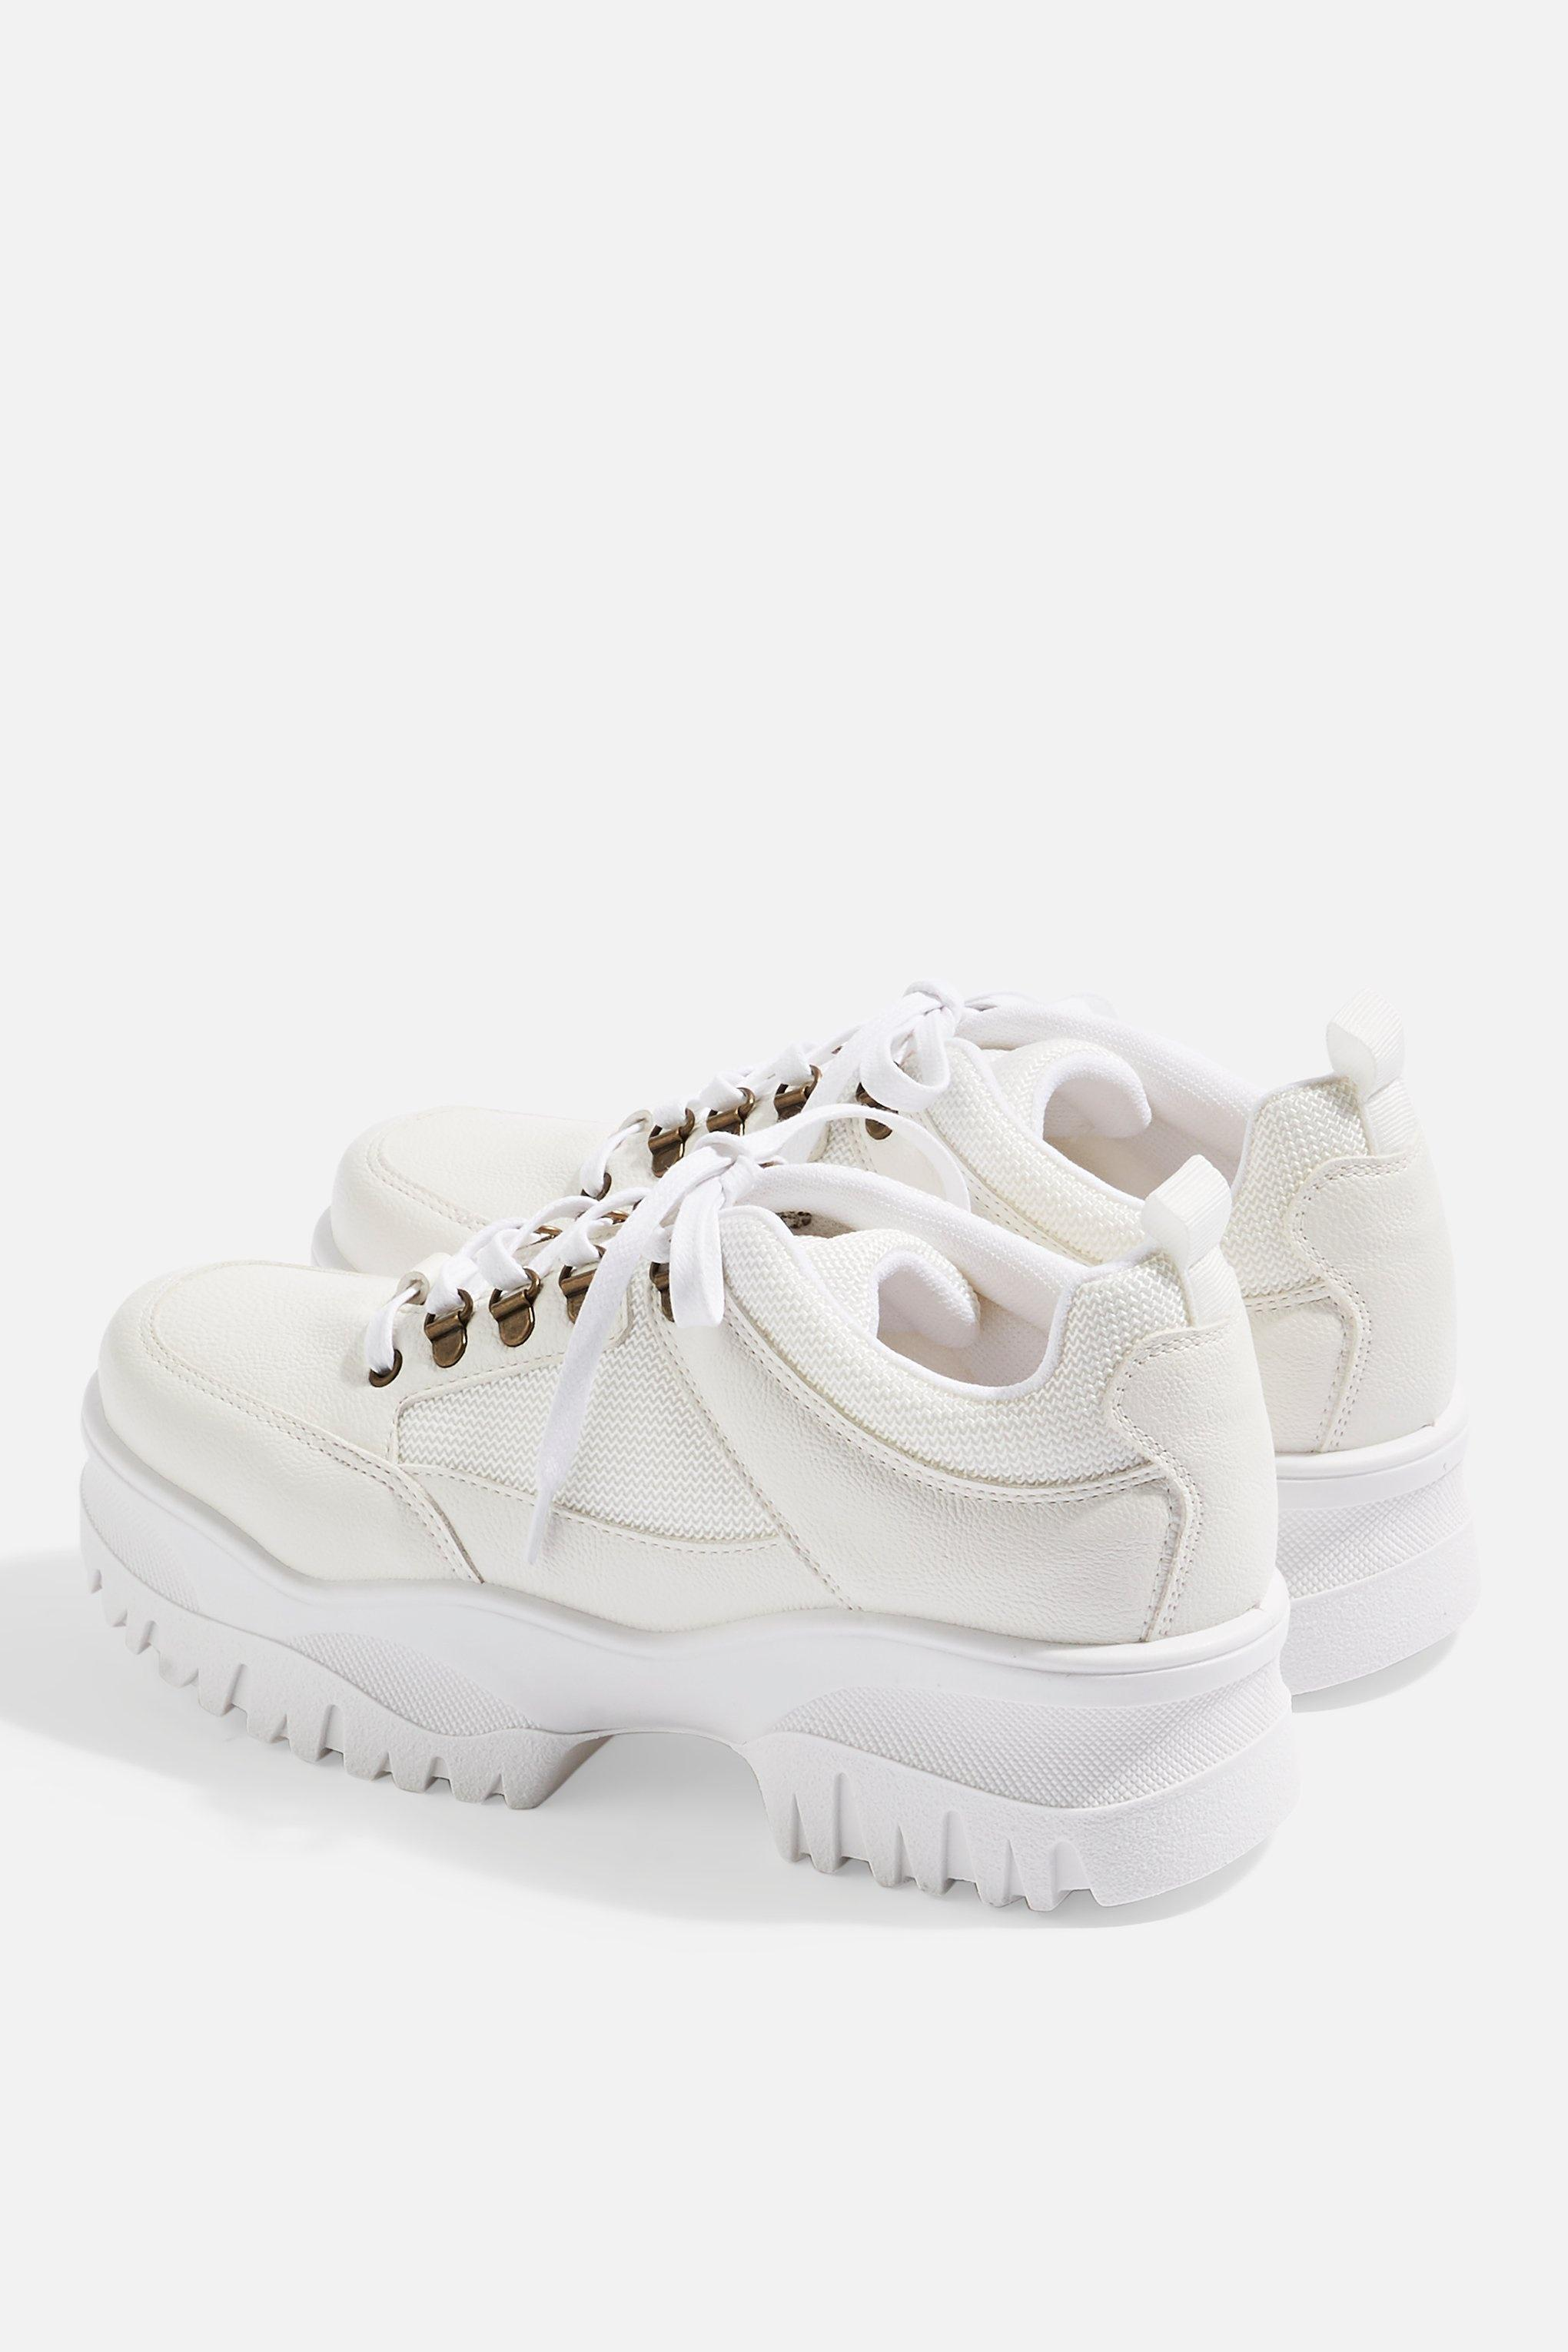 TOPSHOP Chomp Chunky Trainers in White